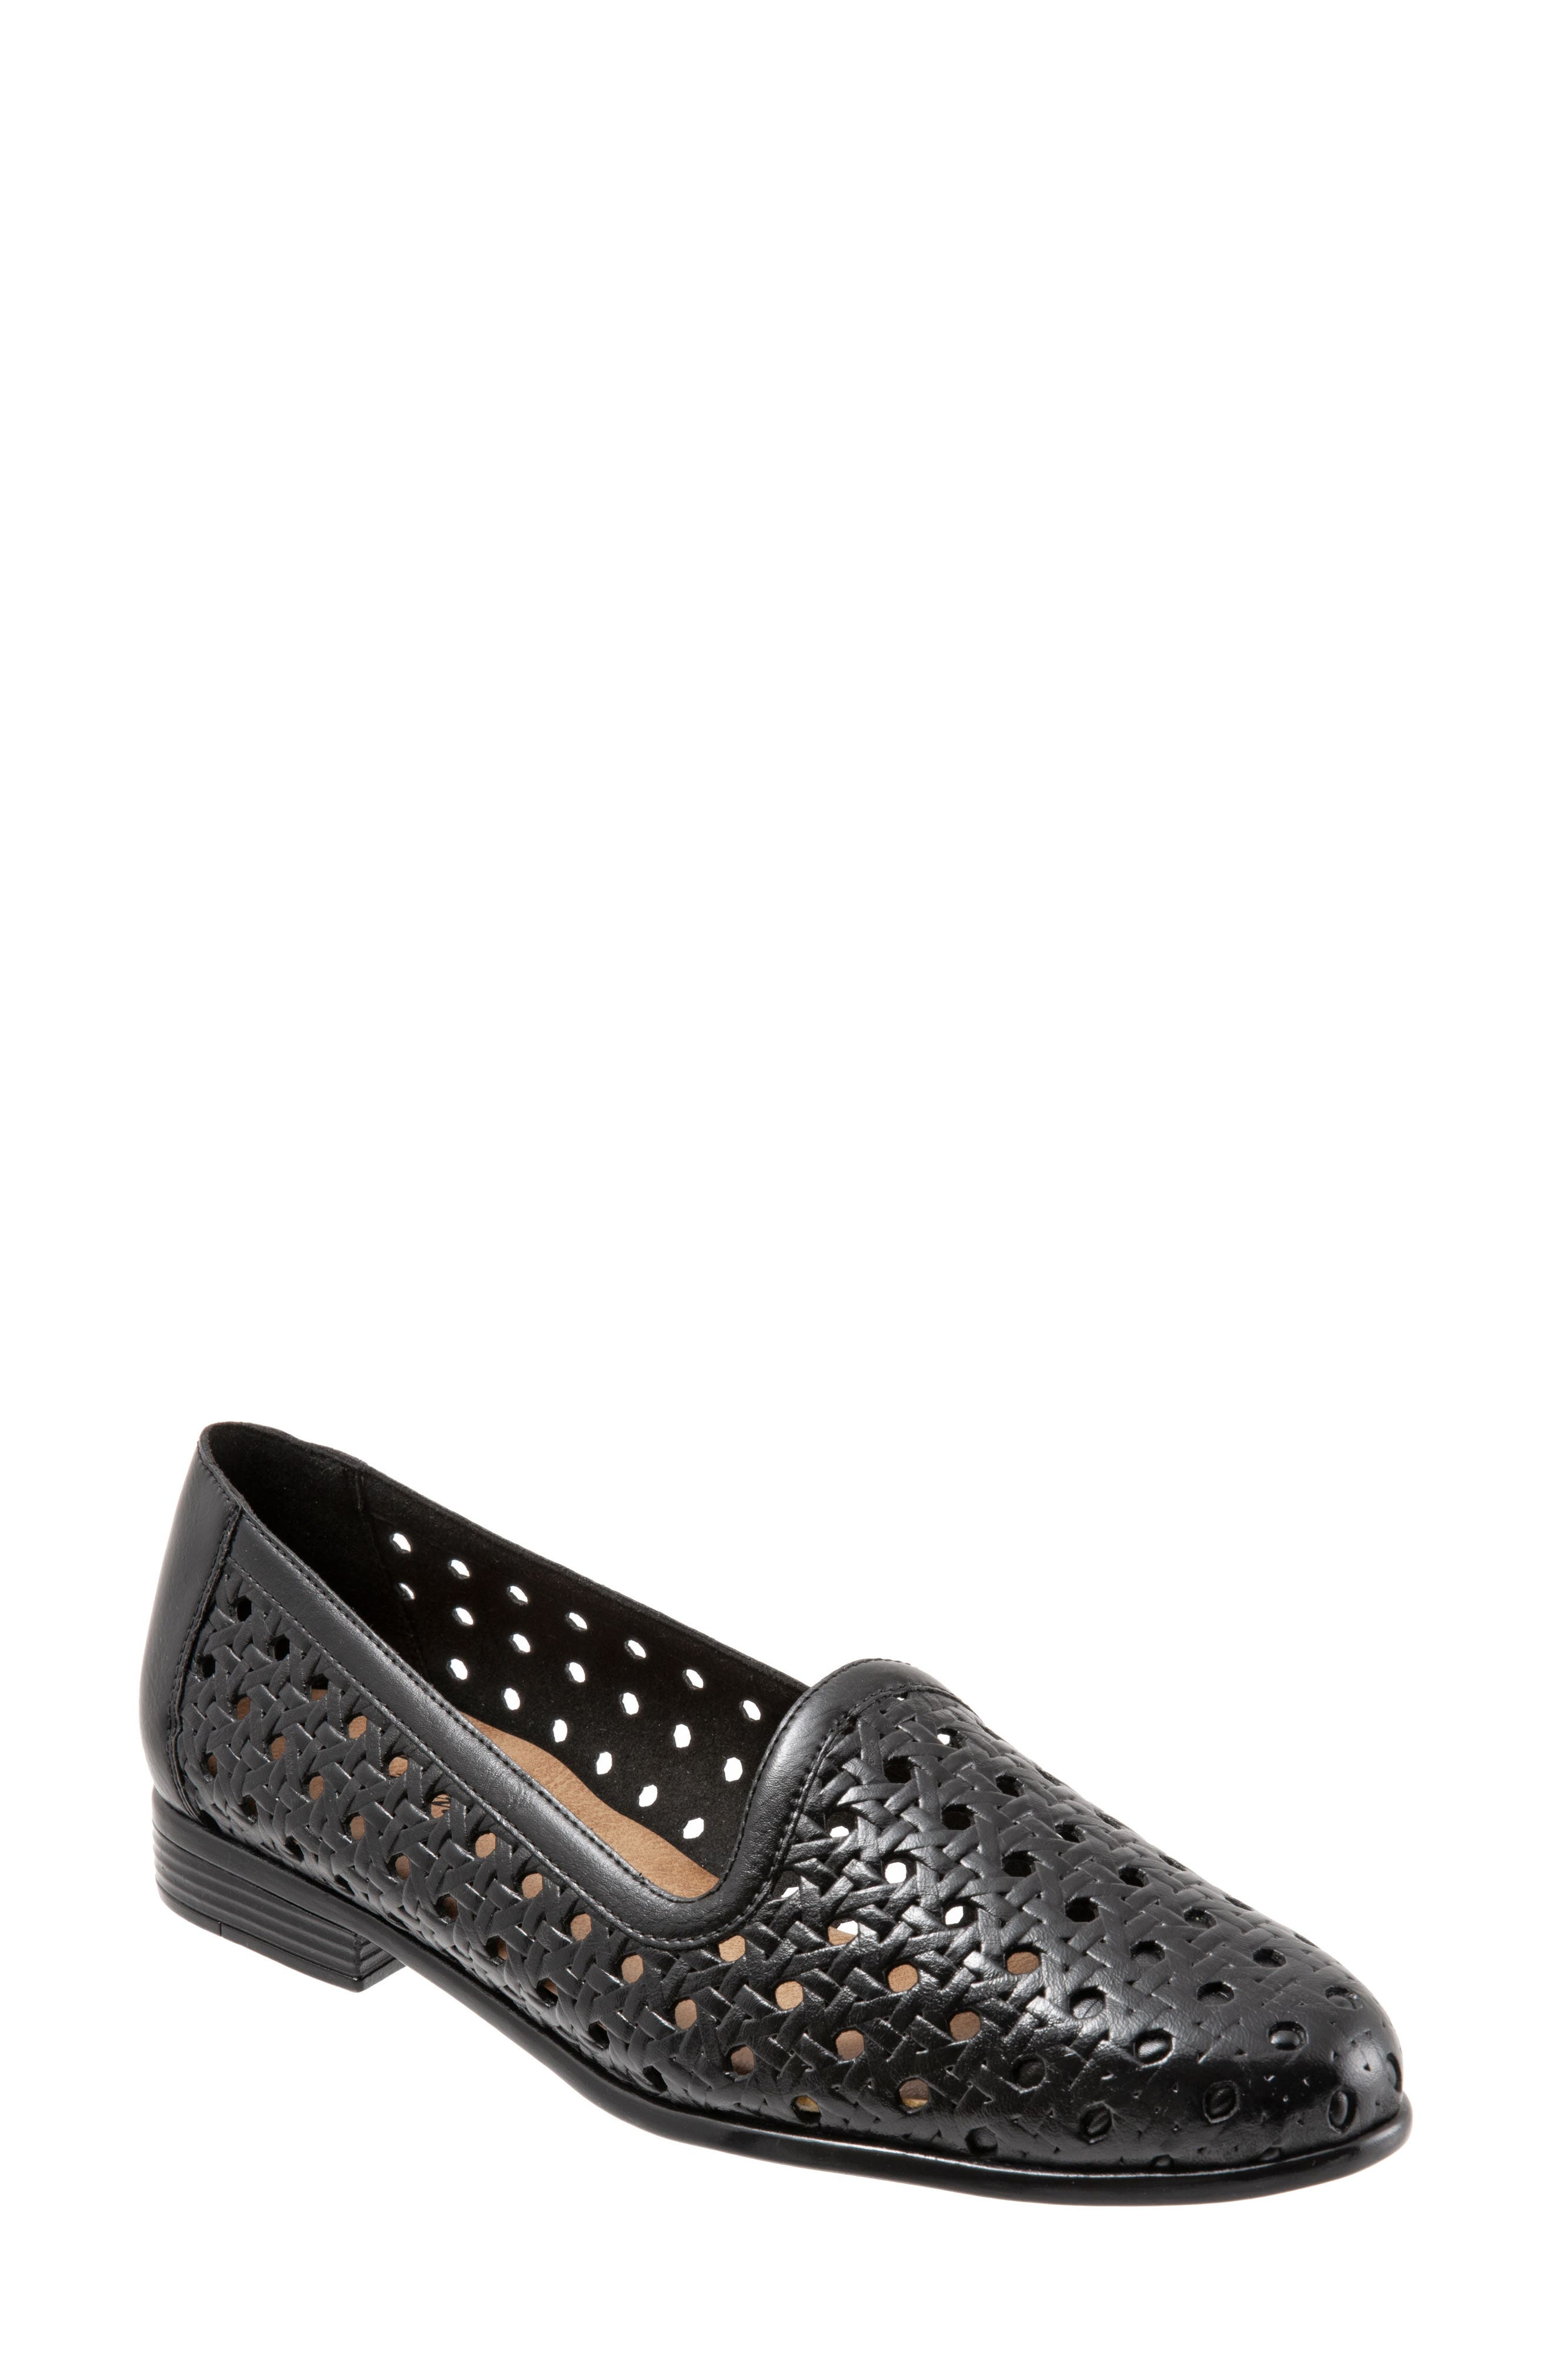 Liz Woven Loafer Flat, Main, color, BLACK/ BLACK LEATHER